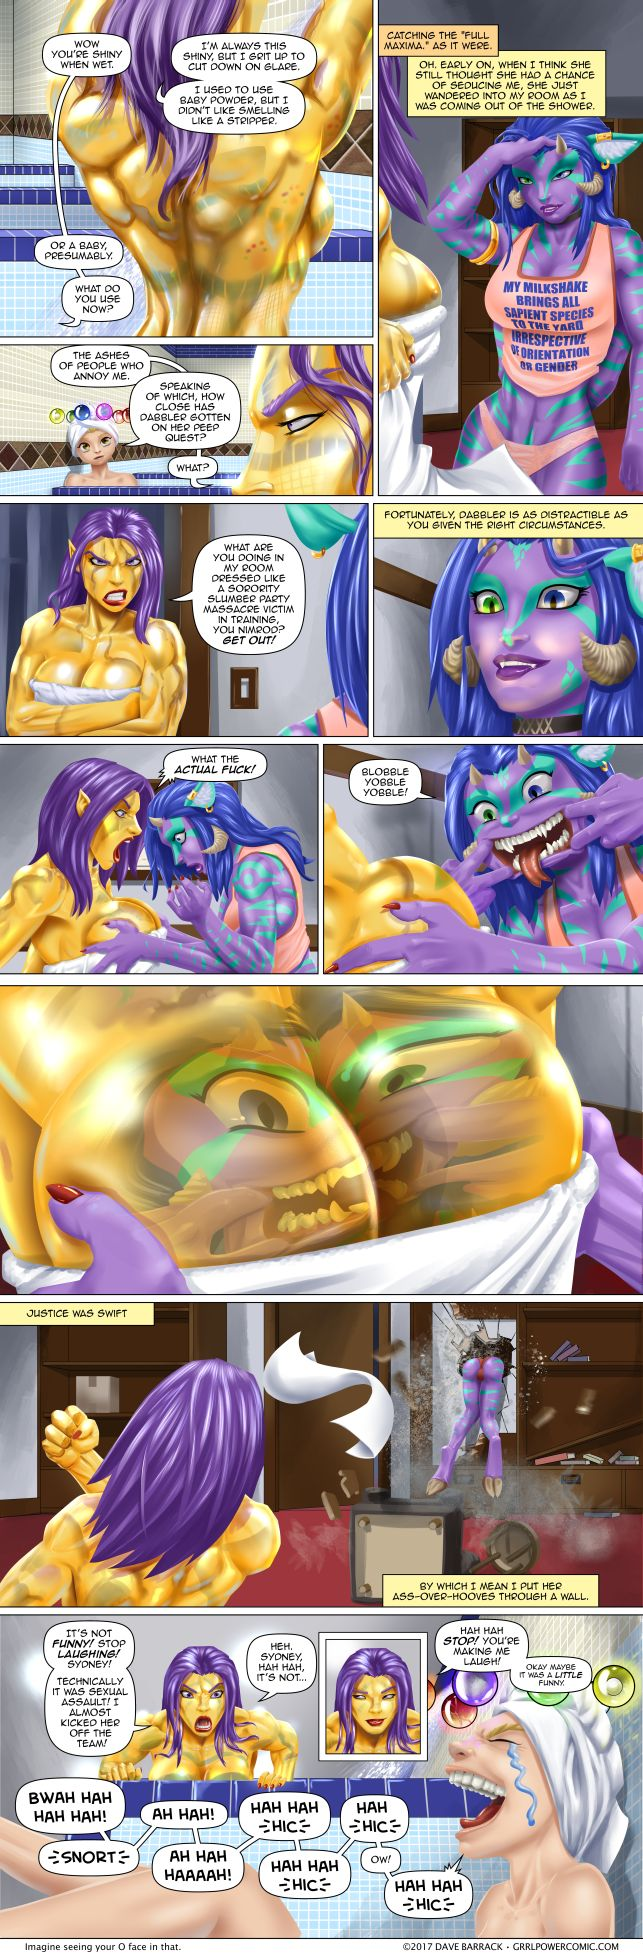 Grrl Power #592 – Funhouse funbags